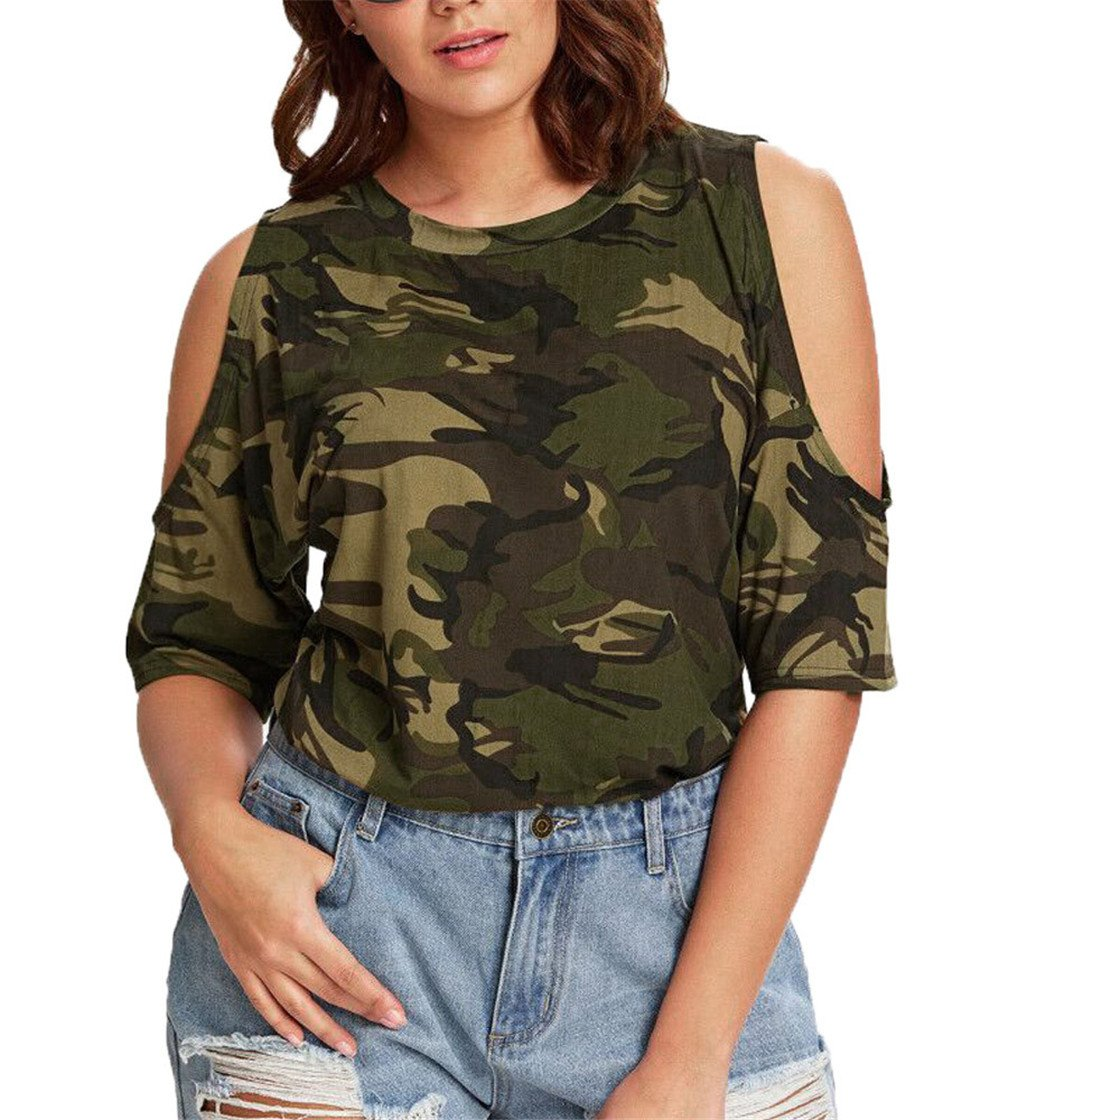 Mose Plus Size Camouflage Womens Clothes Large Size Strapless Tops